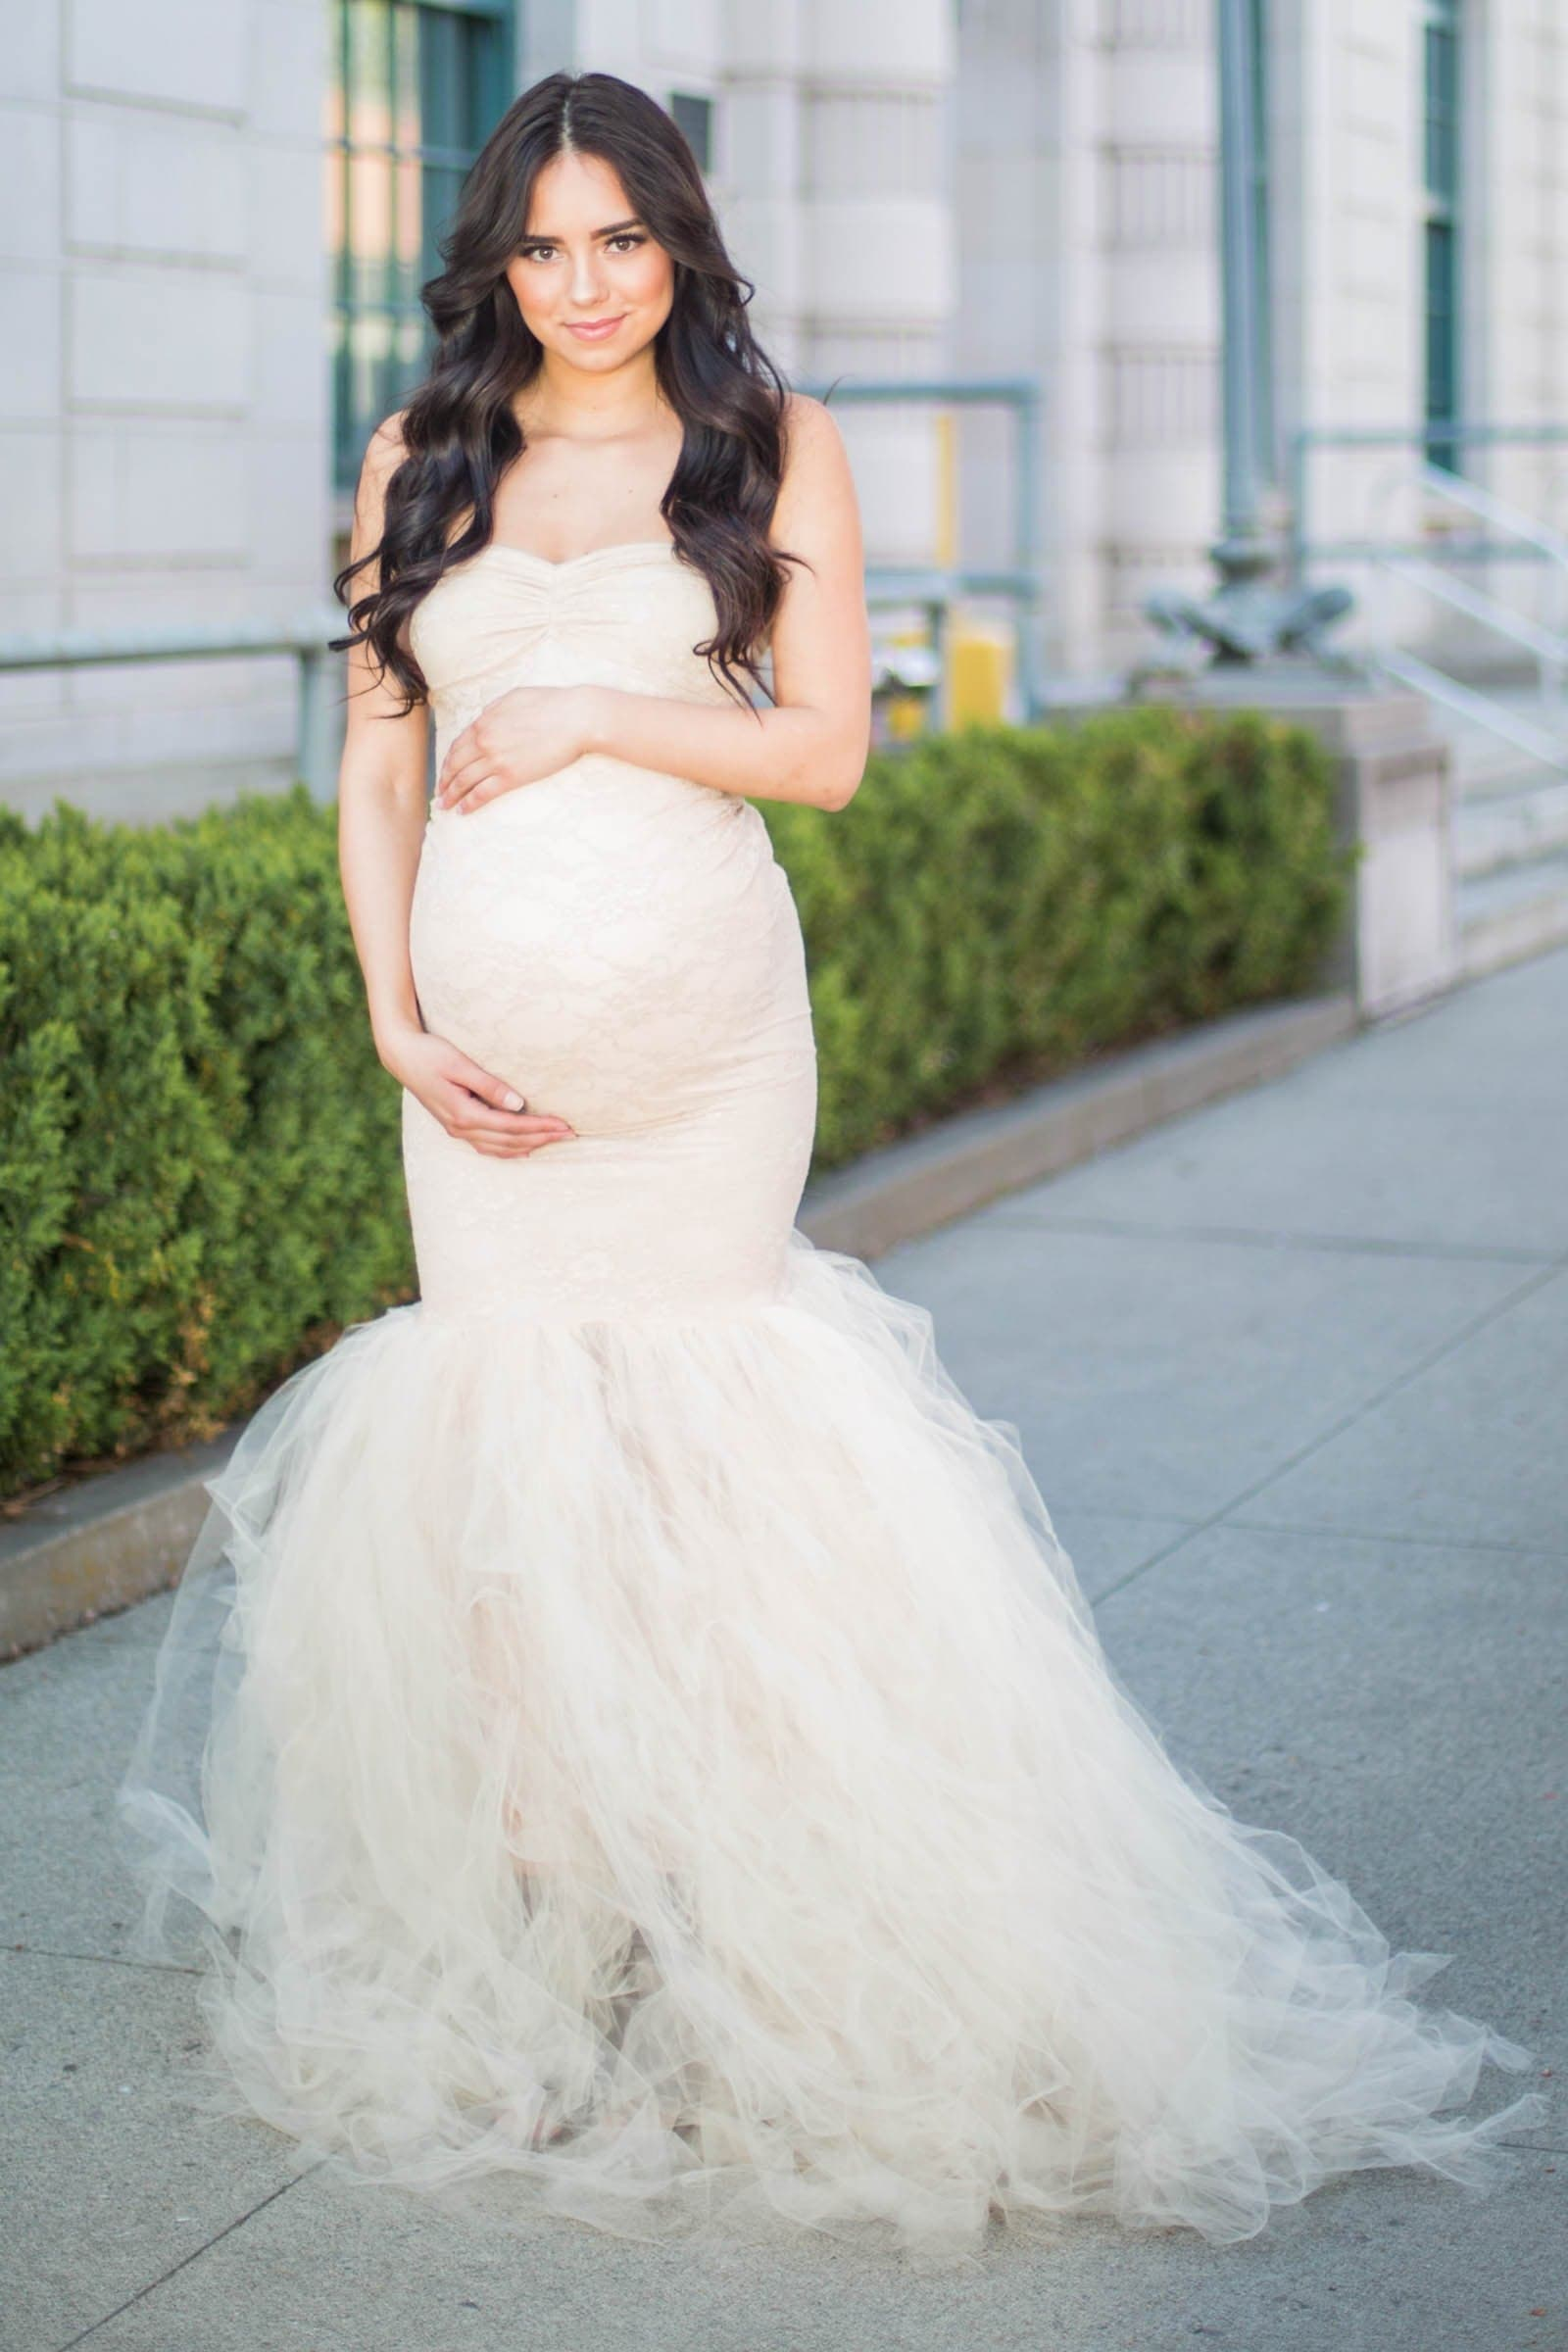 b0c826be99cd9 Maternity Bridal Gown with Tulle Bottom - Sexy Mama Maternity